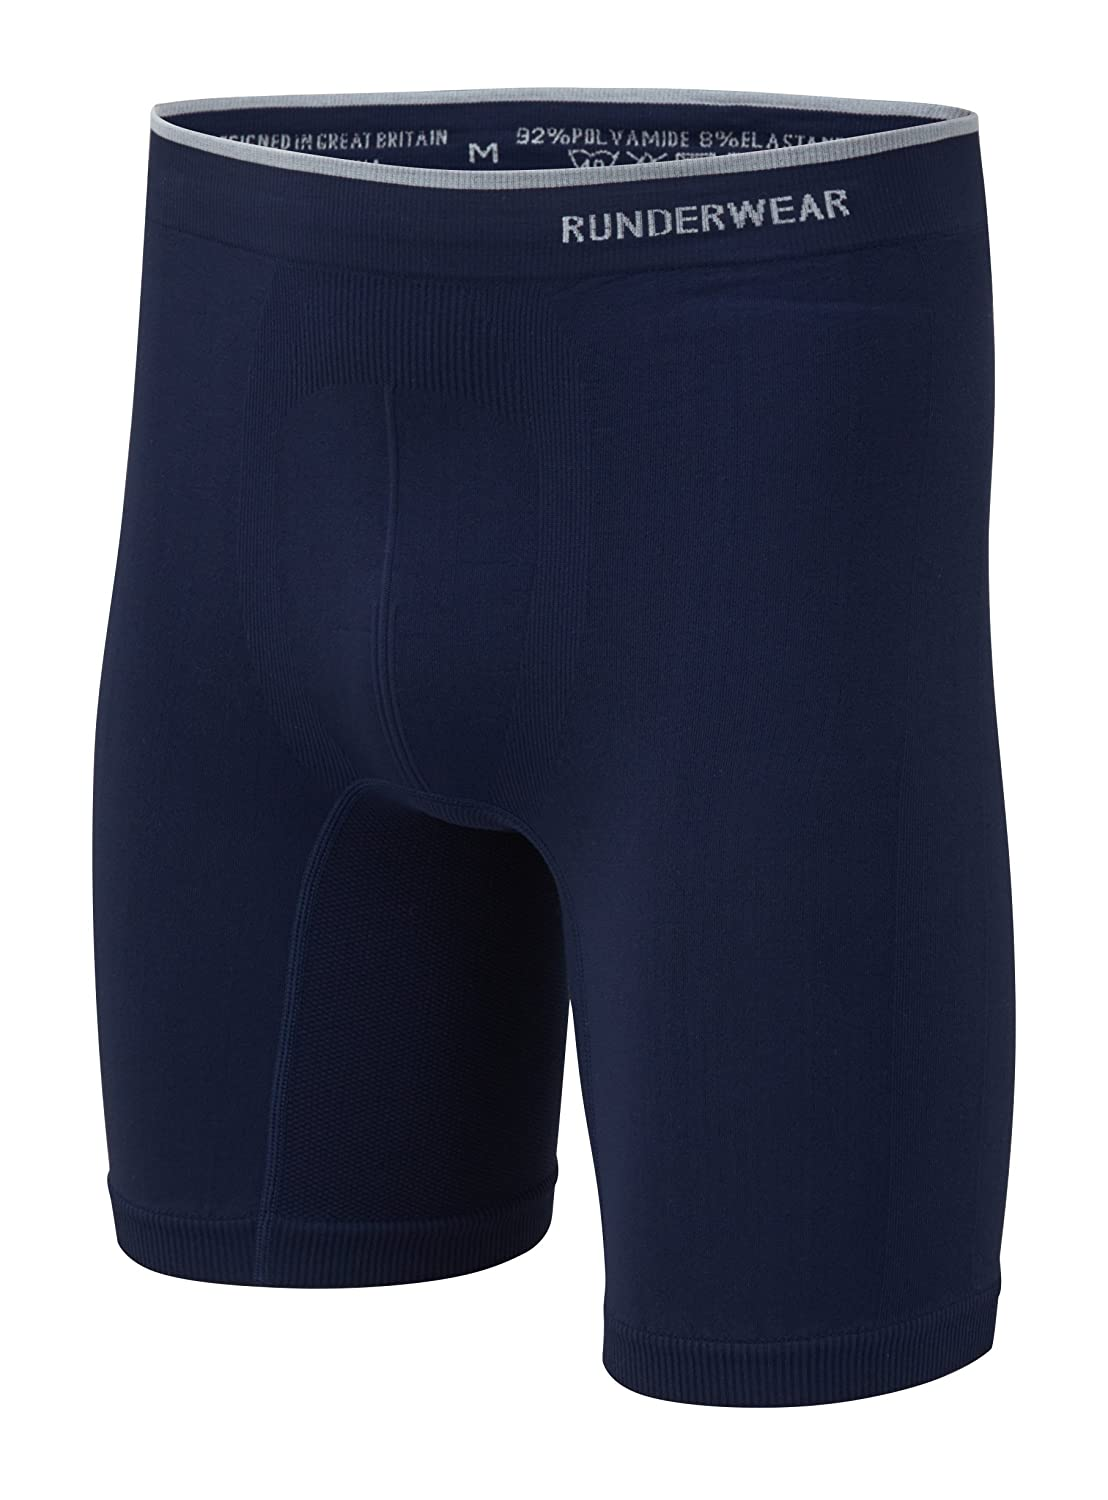 Runderwear Men's Long Boxer Shorts   Chafe-Free Performance Underwear with Seamless Technology